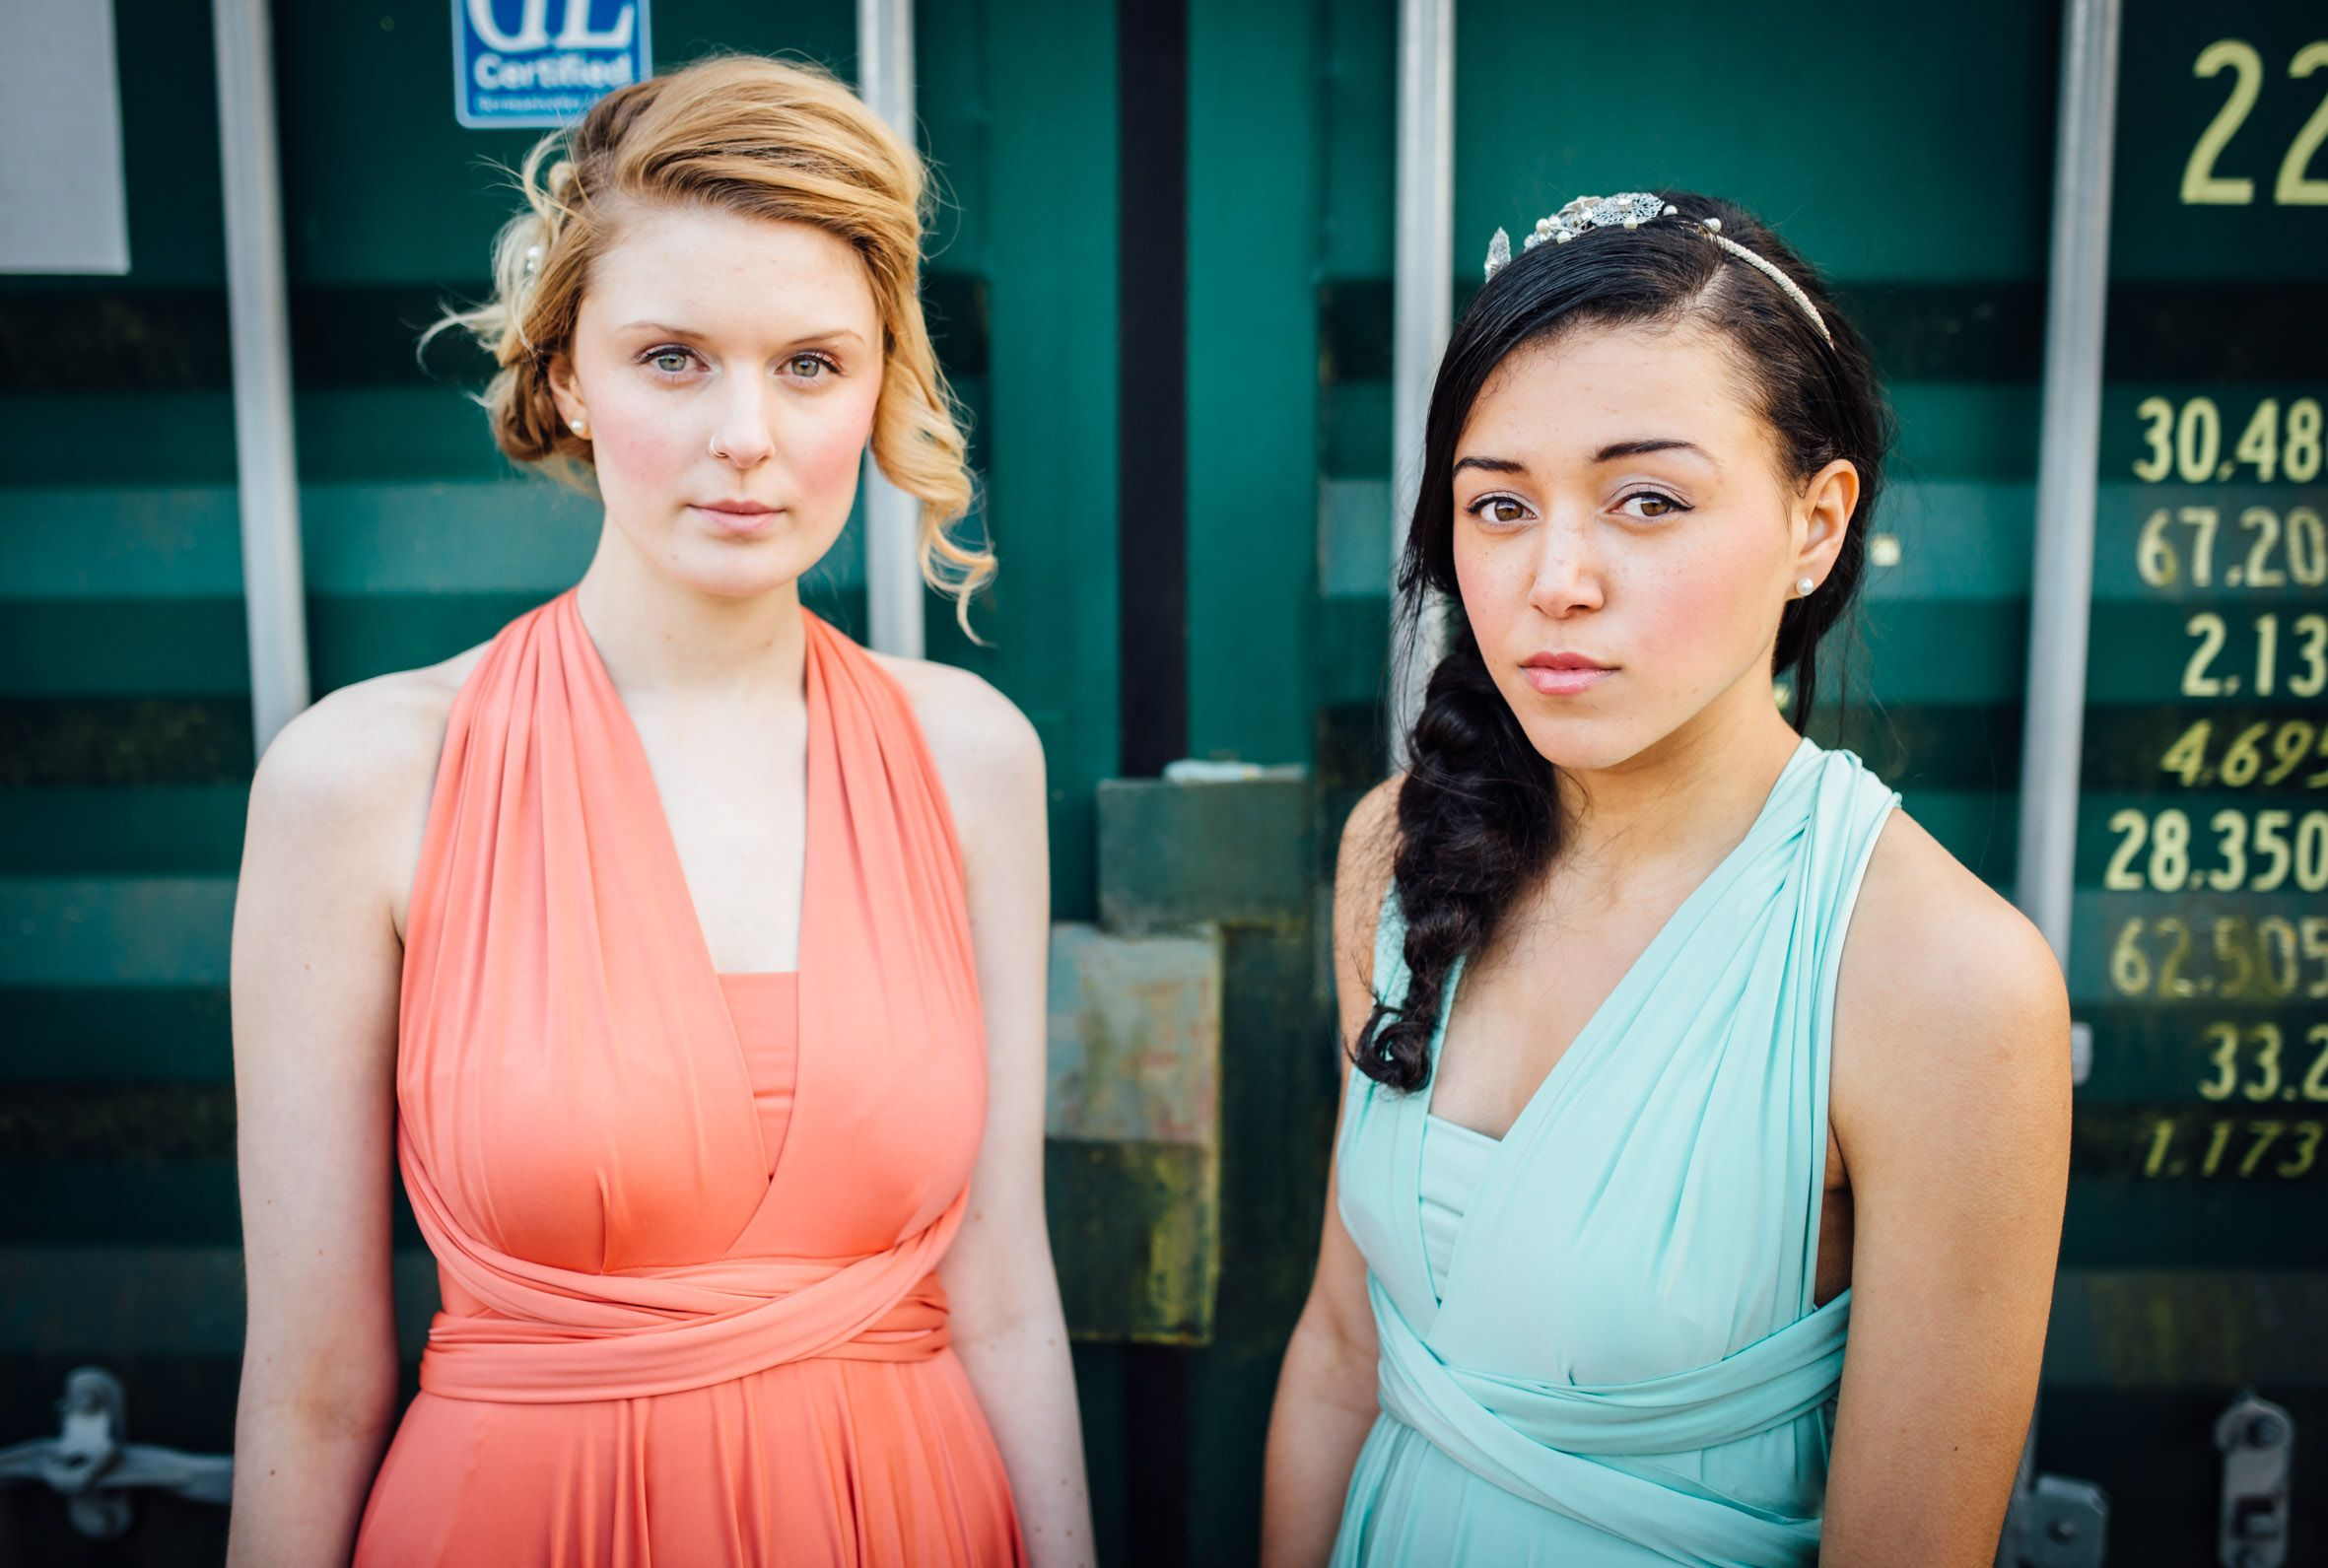 Two birds bridesmaid dresses mattbrownphotography two birds bridesmaid dresses mattbrownphotography ombrellifo Image collections